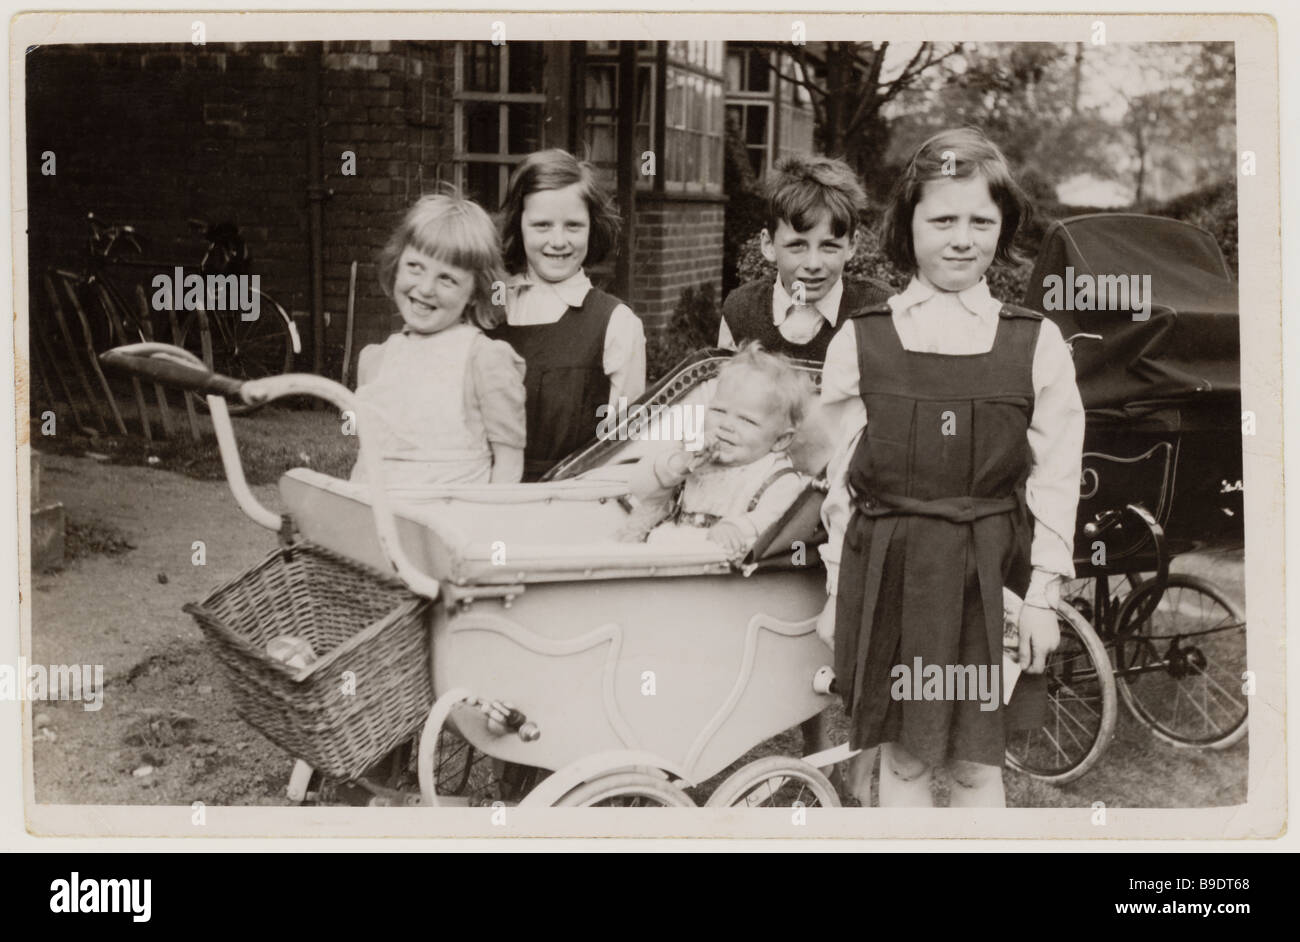 Cheeky young children with prams looking after a baby outside their home in the 1950's Stock Photo